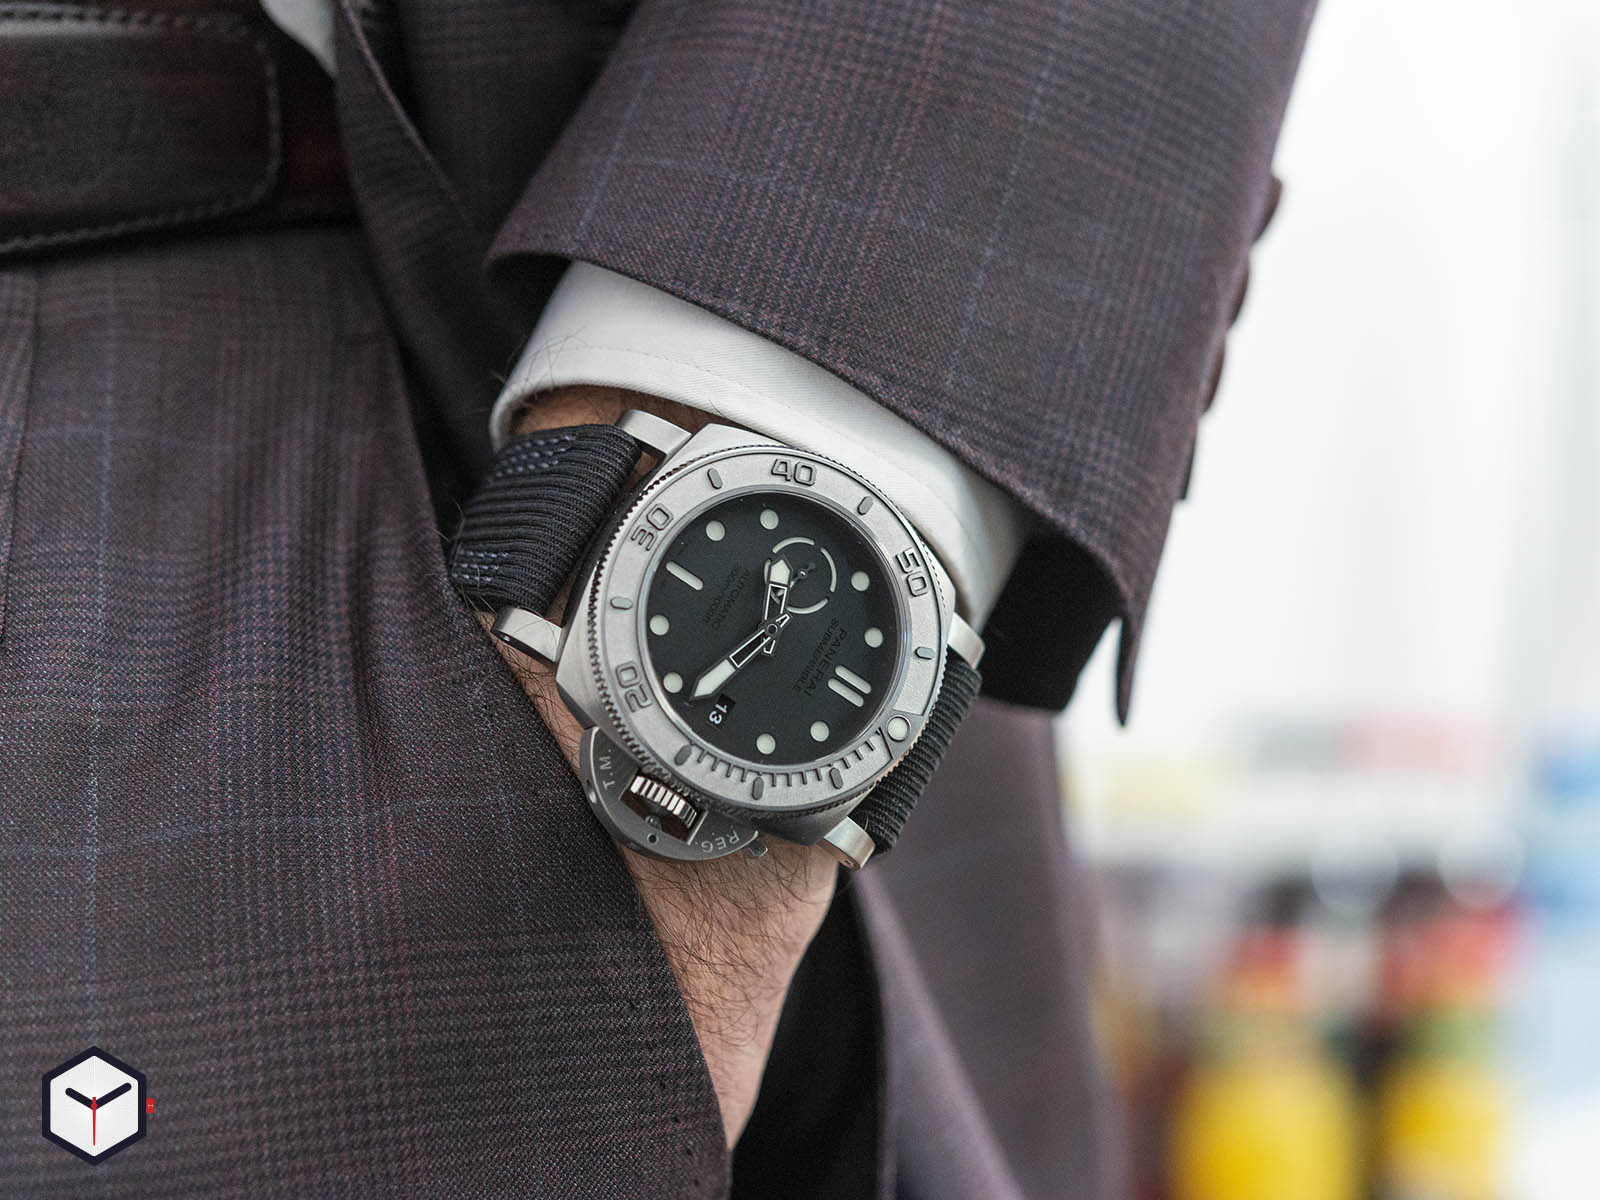 pam00984-officine-panerai-submersible-mike-horn-edition-47mm-sihh-2019-6.jpg